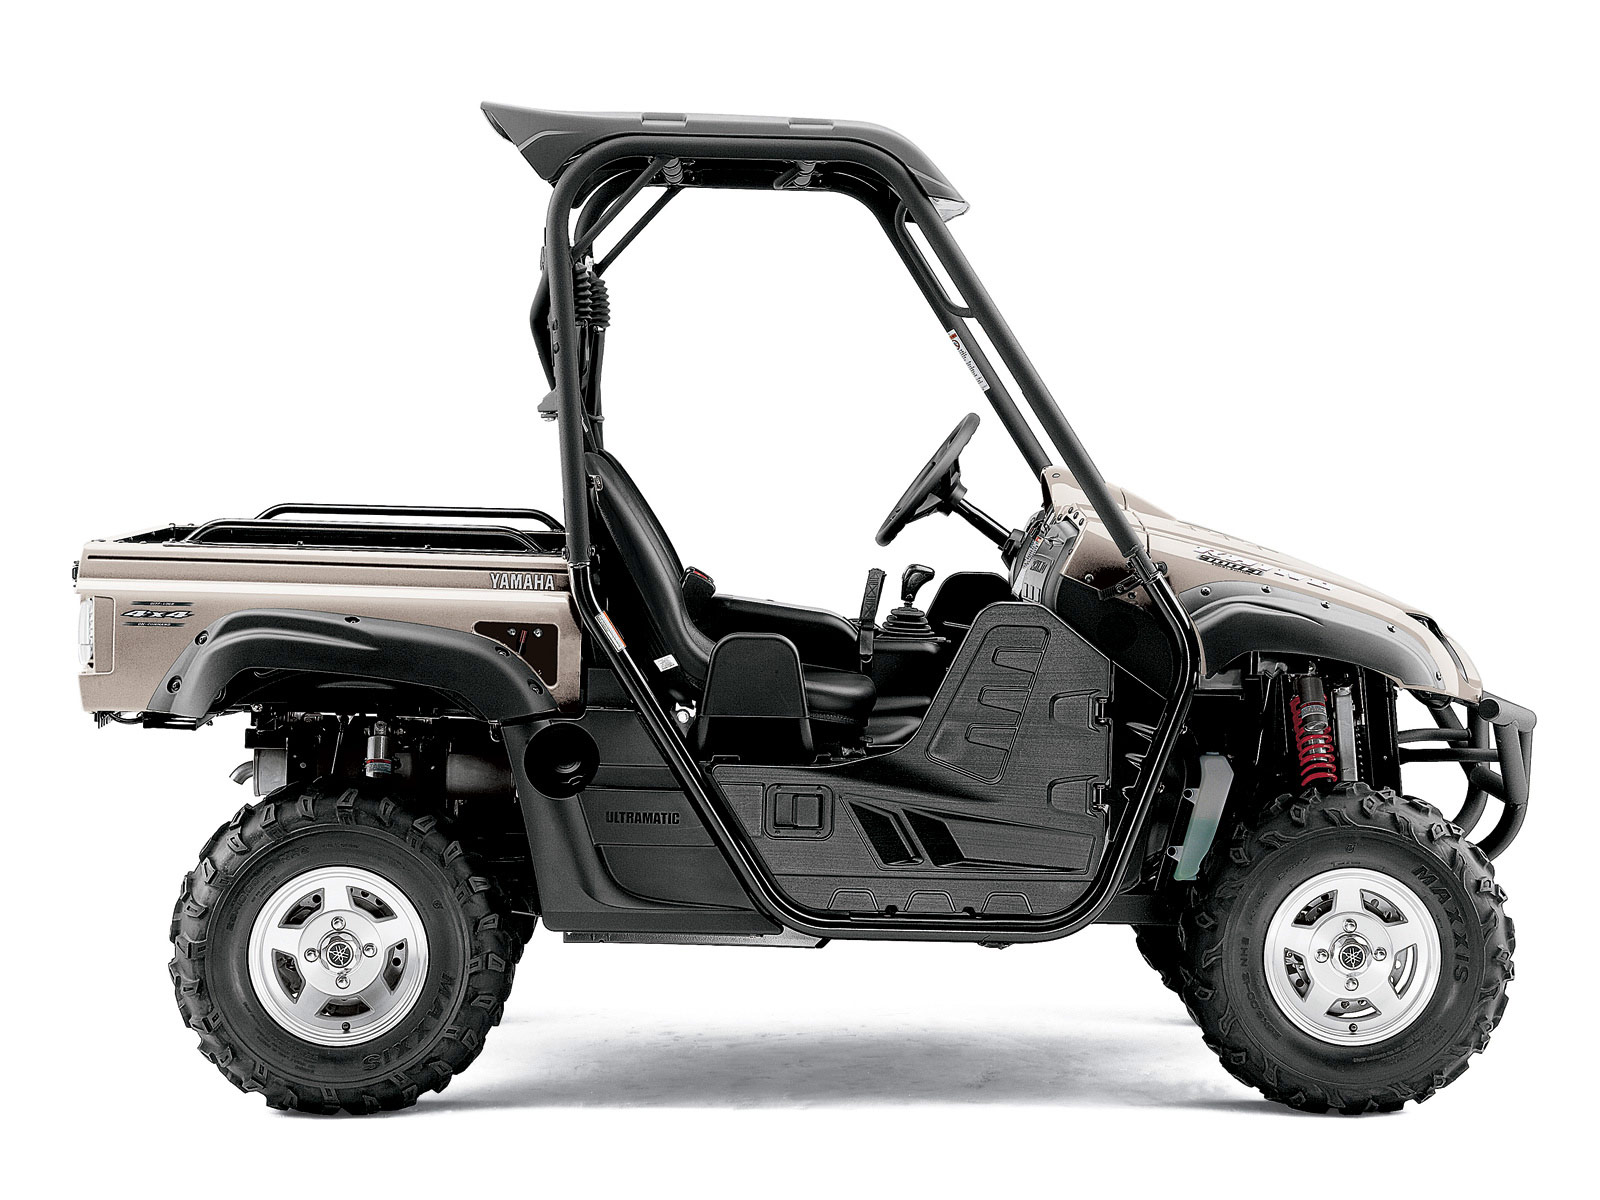 2012 yamaha rhino 700 fi auto 4x4 sport edition deluxe review. Black Bedroom Furniture Sets. Home Design Ideas